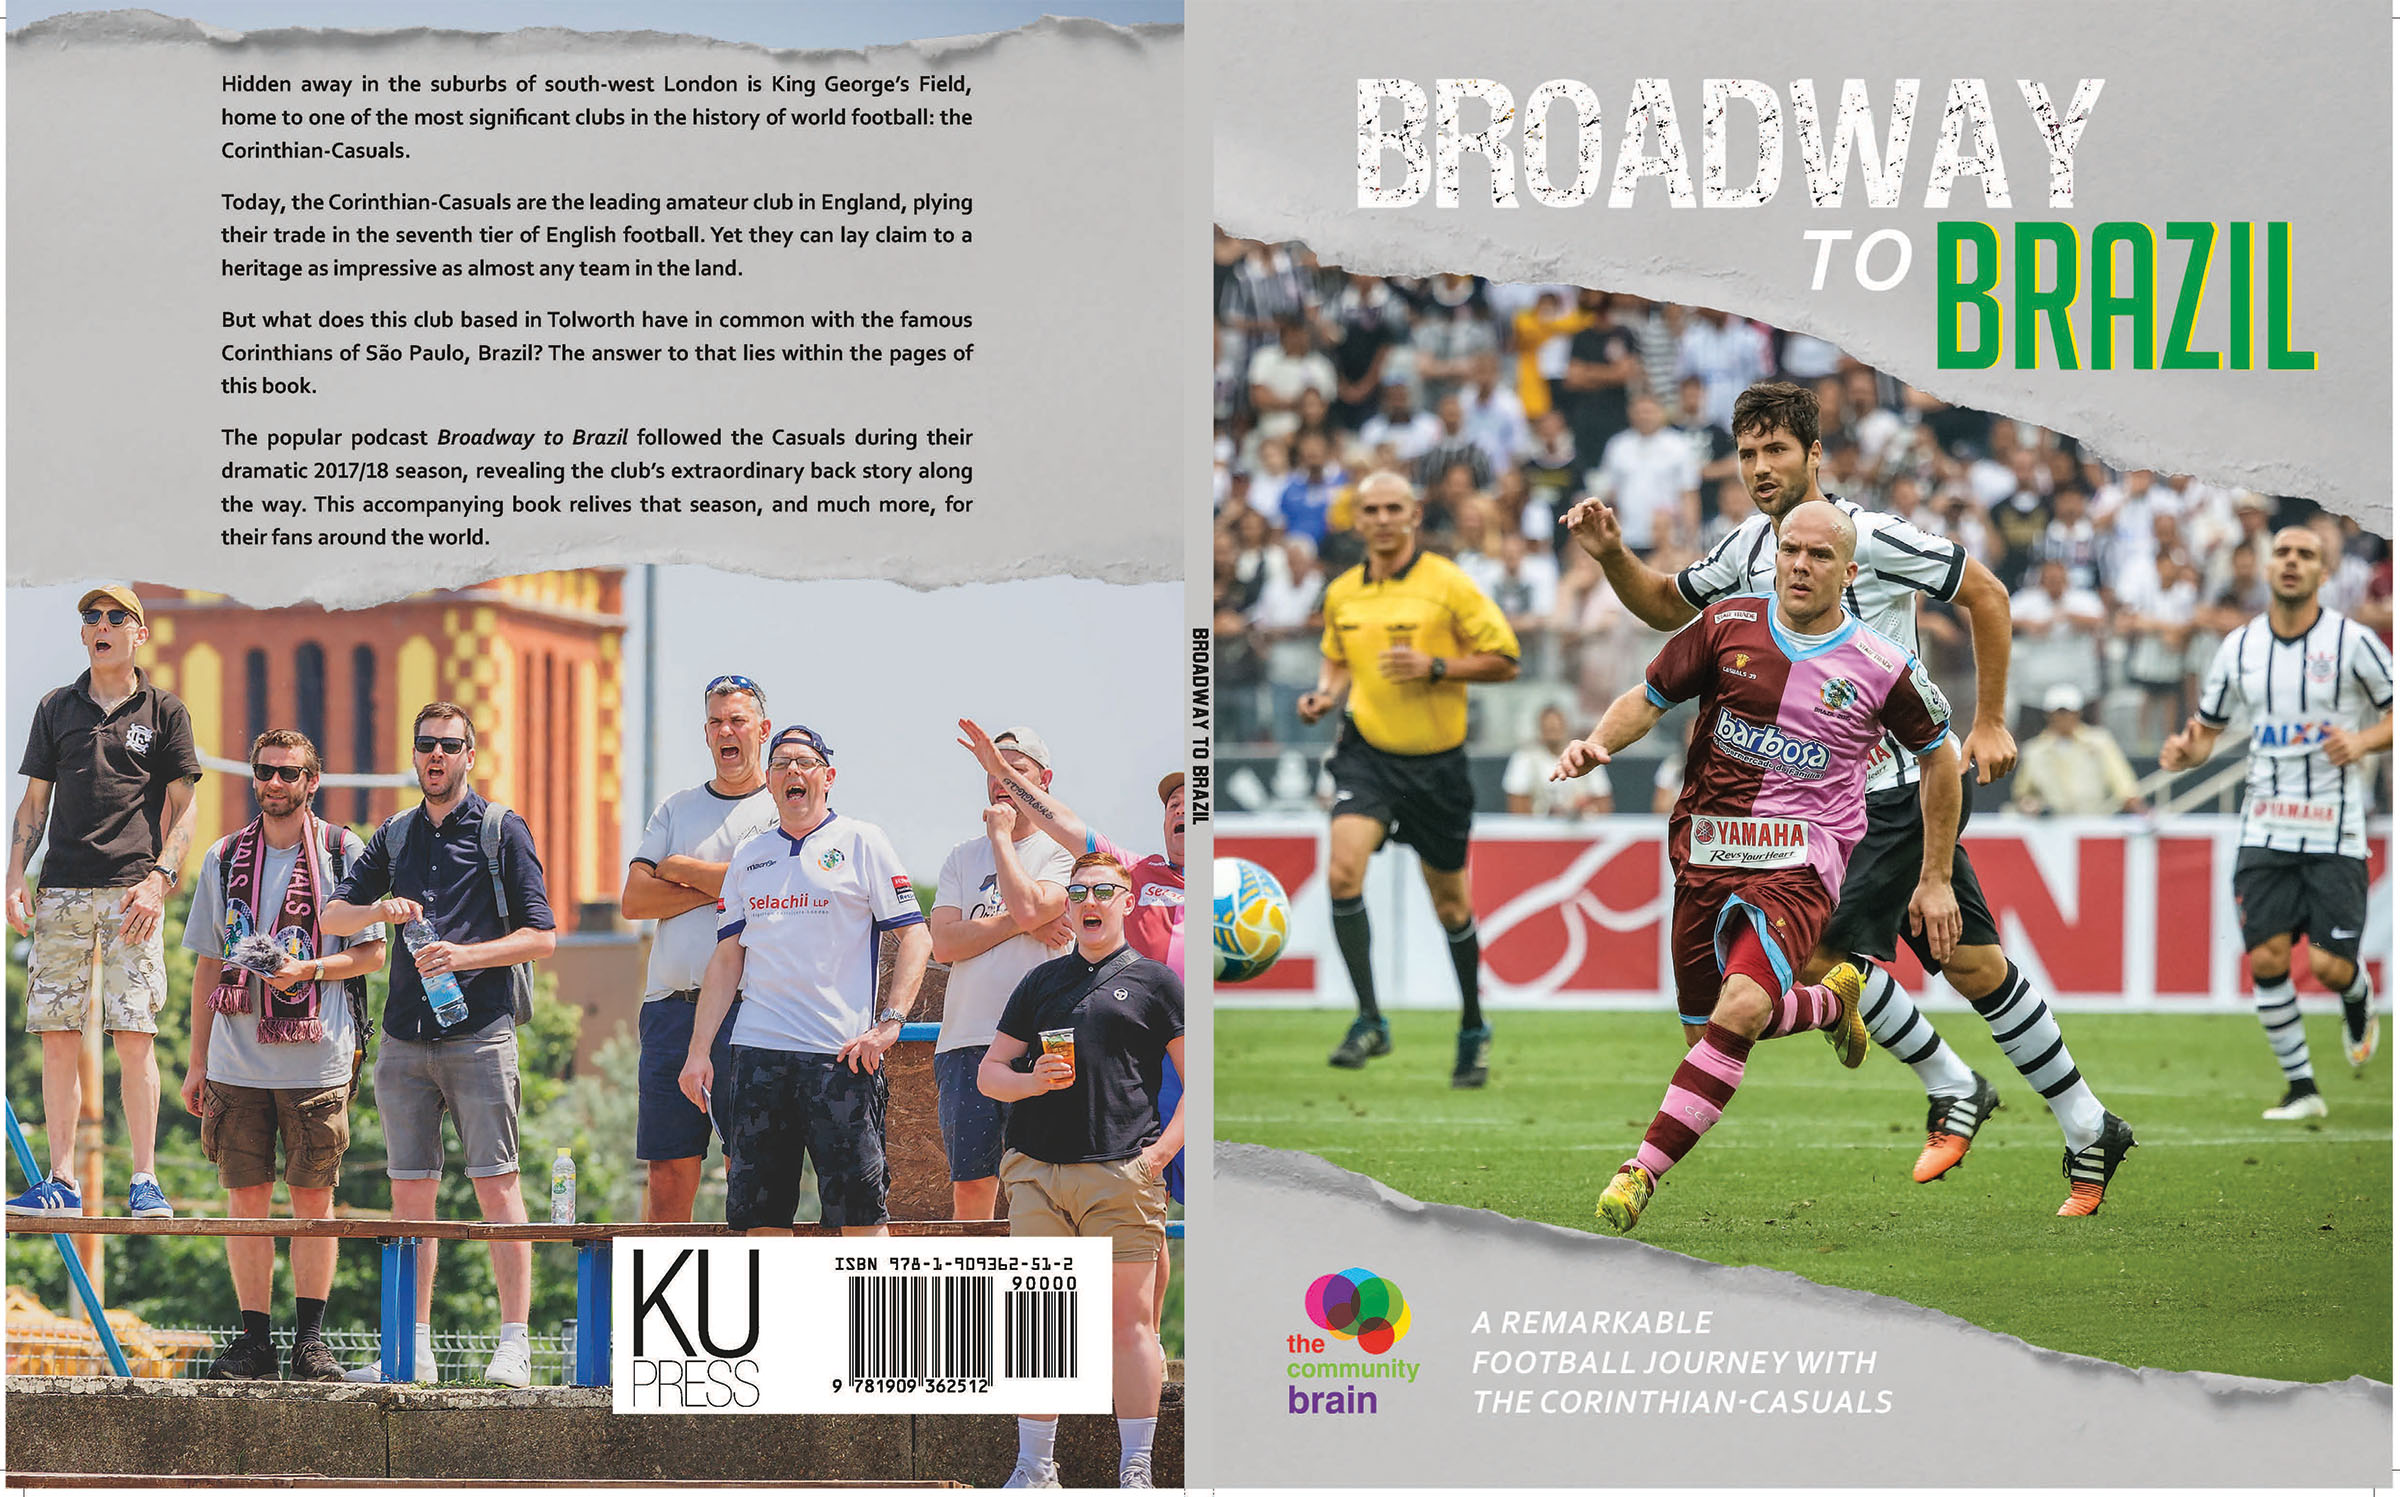 Broadway to Brazil cover spread, showing the front and back covers of the book